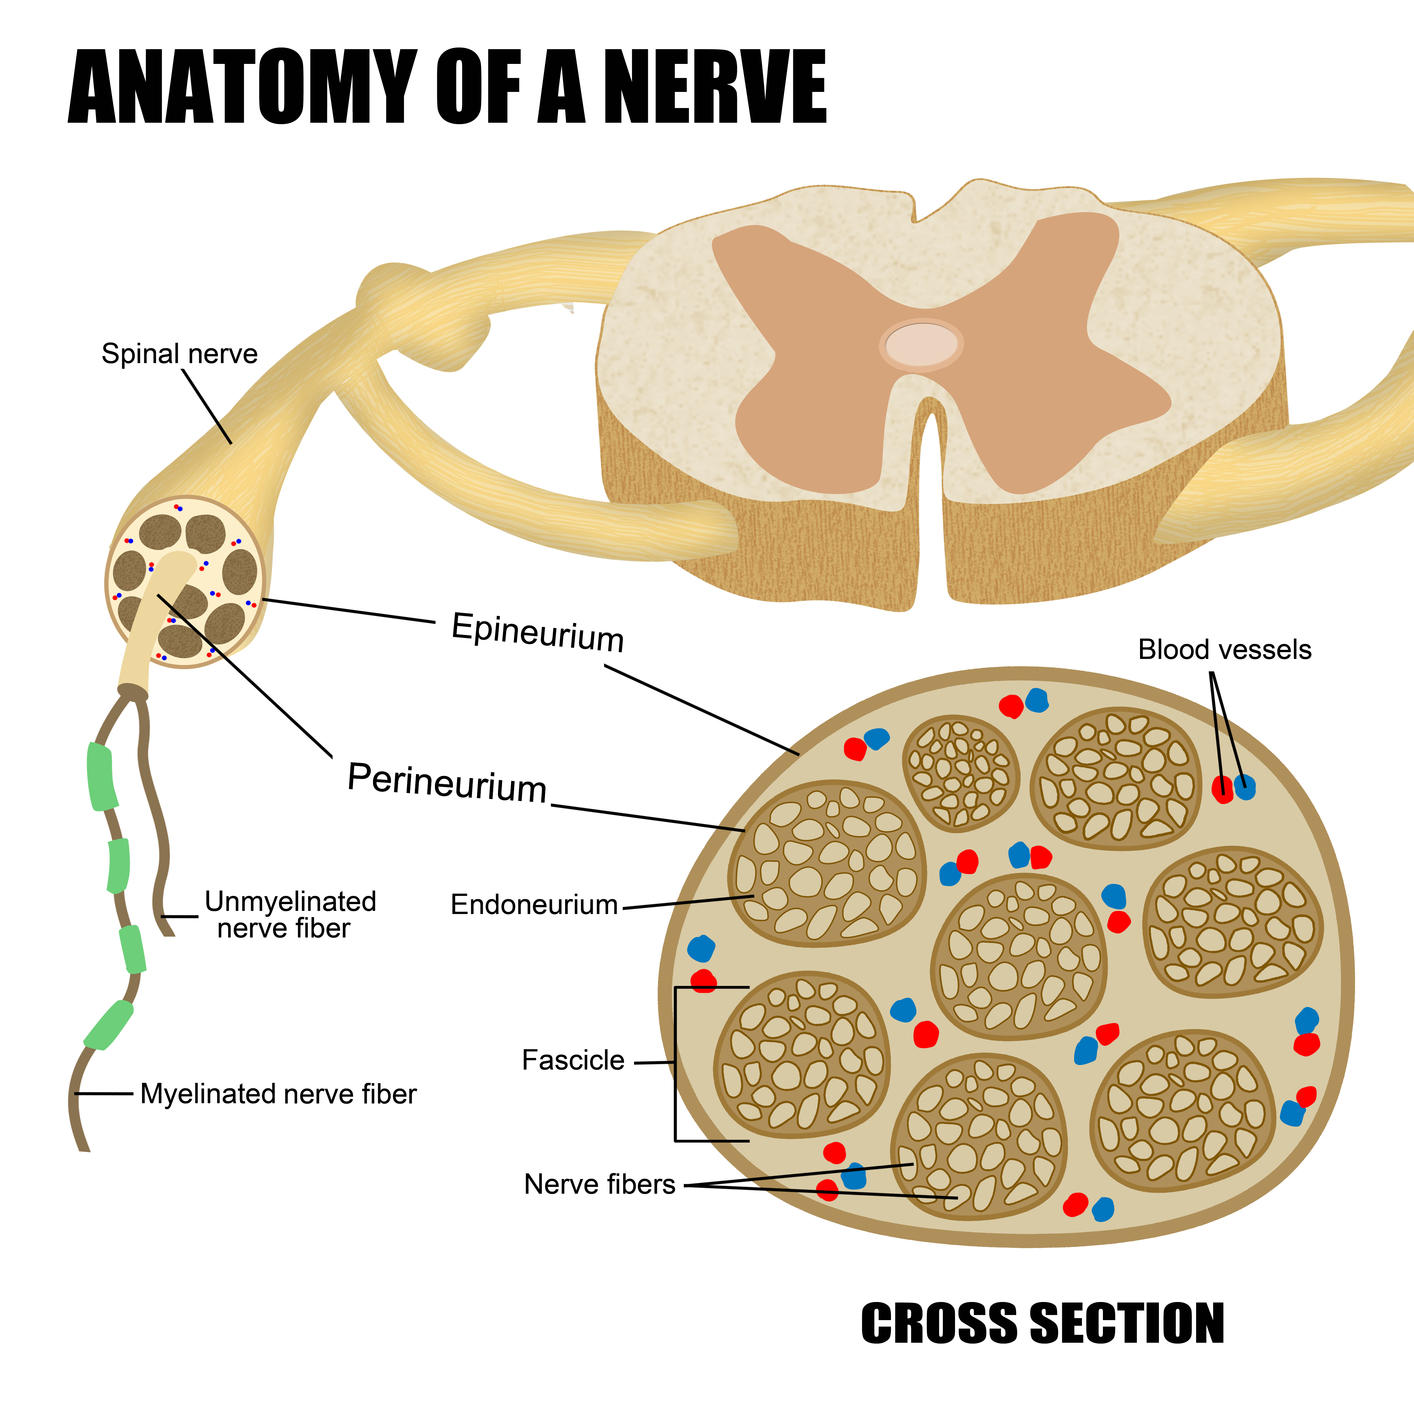 Anatomz of nerves